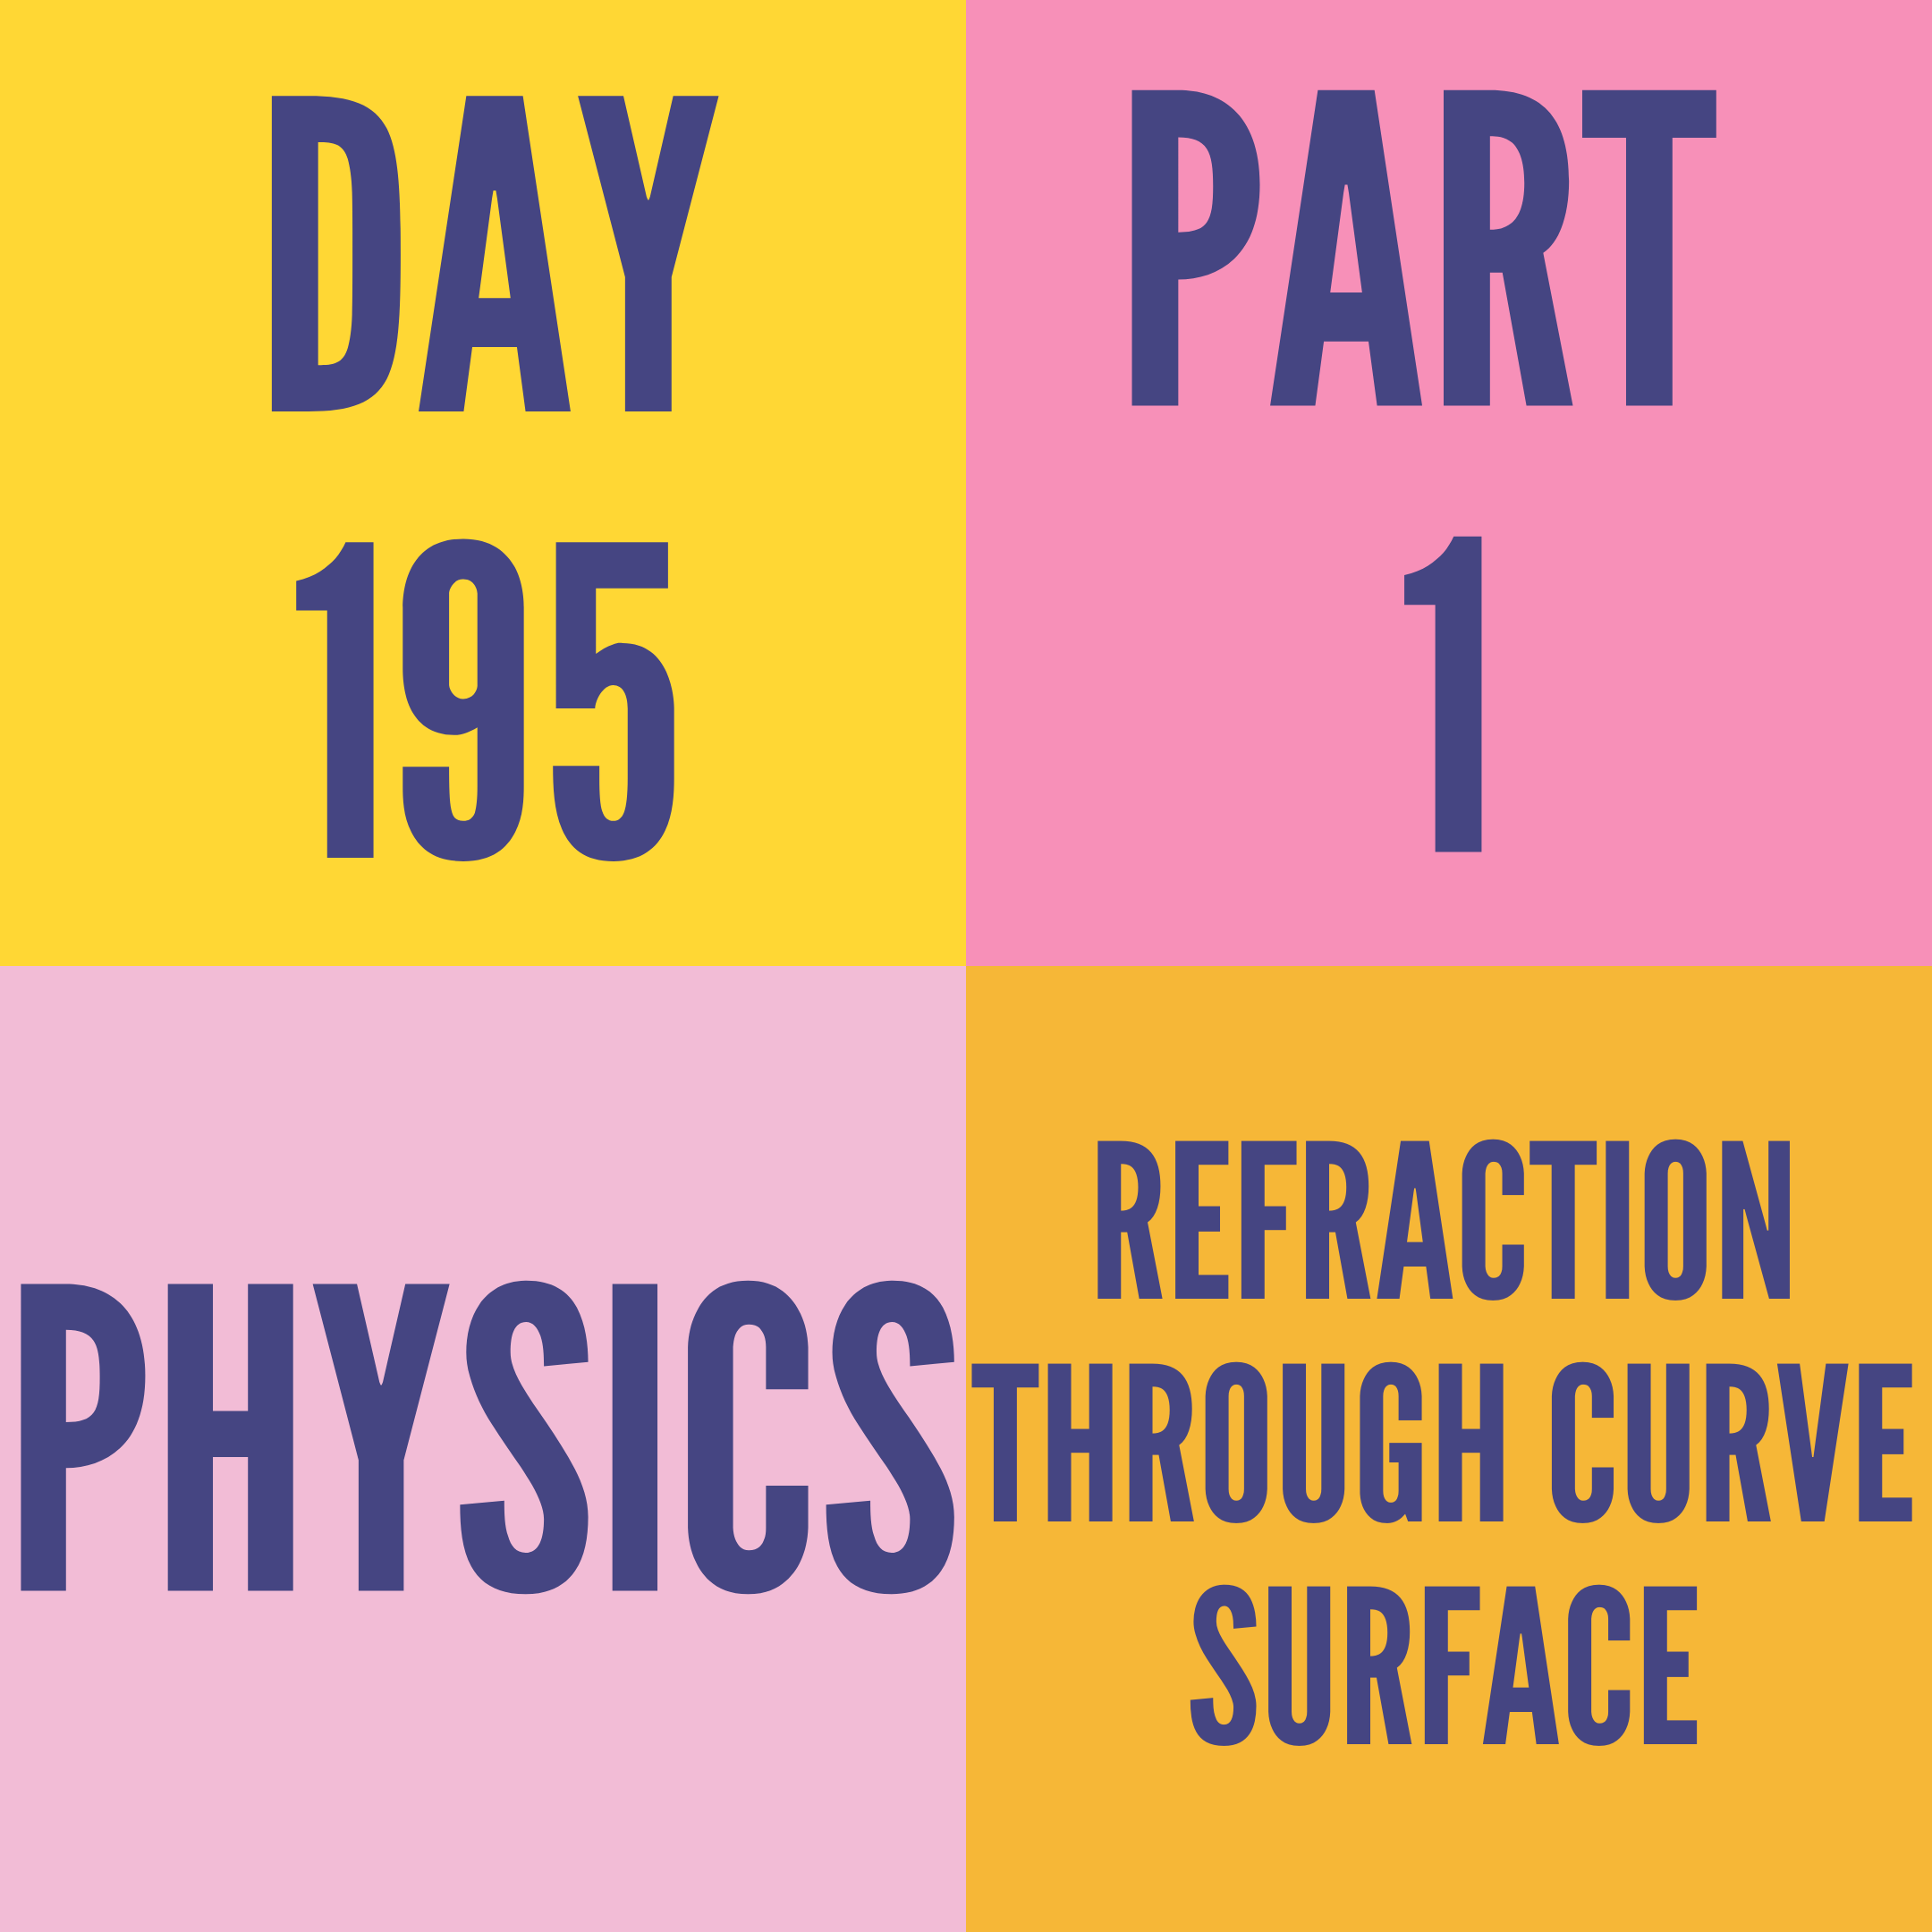 DAY-195 PART-1 REFRACTION THROUGH CURVE SURFACE